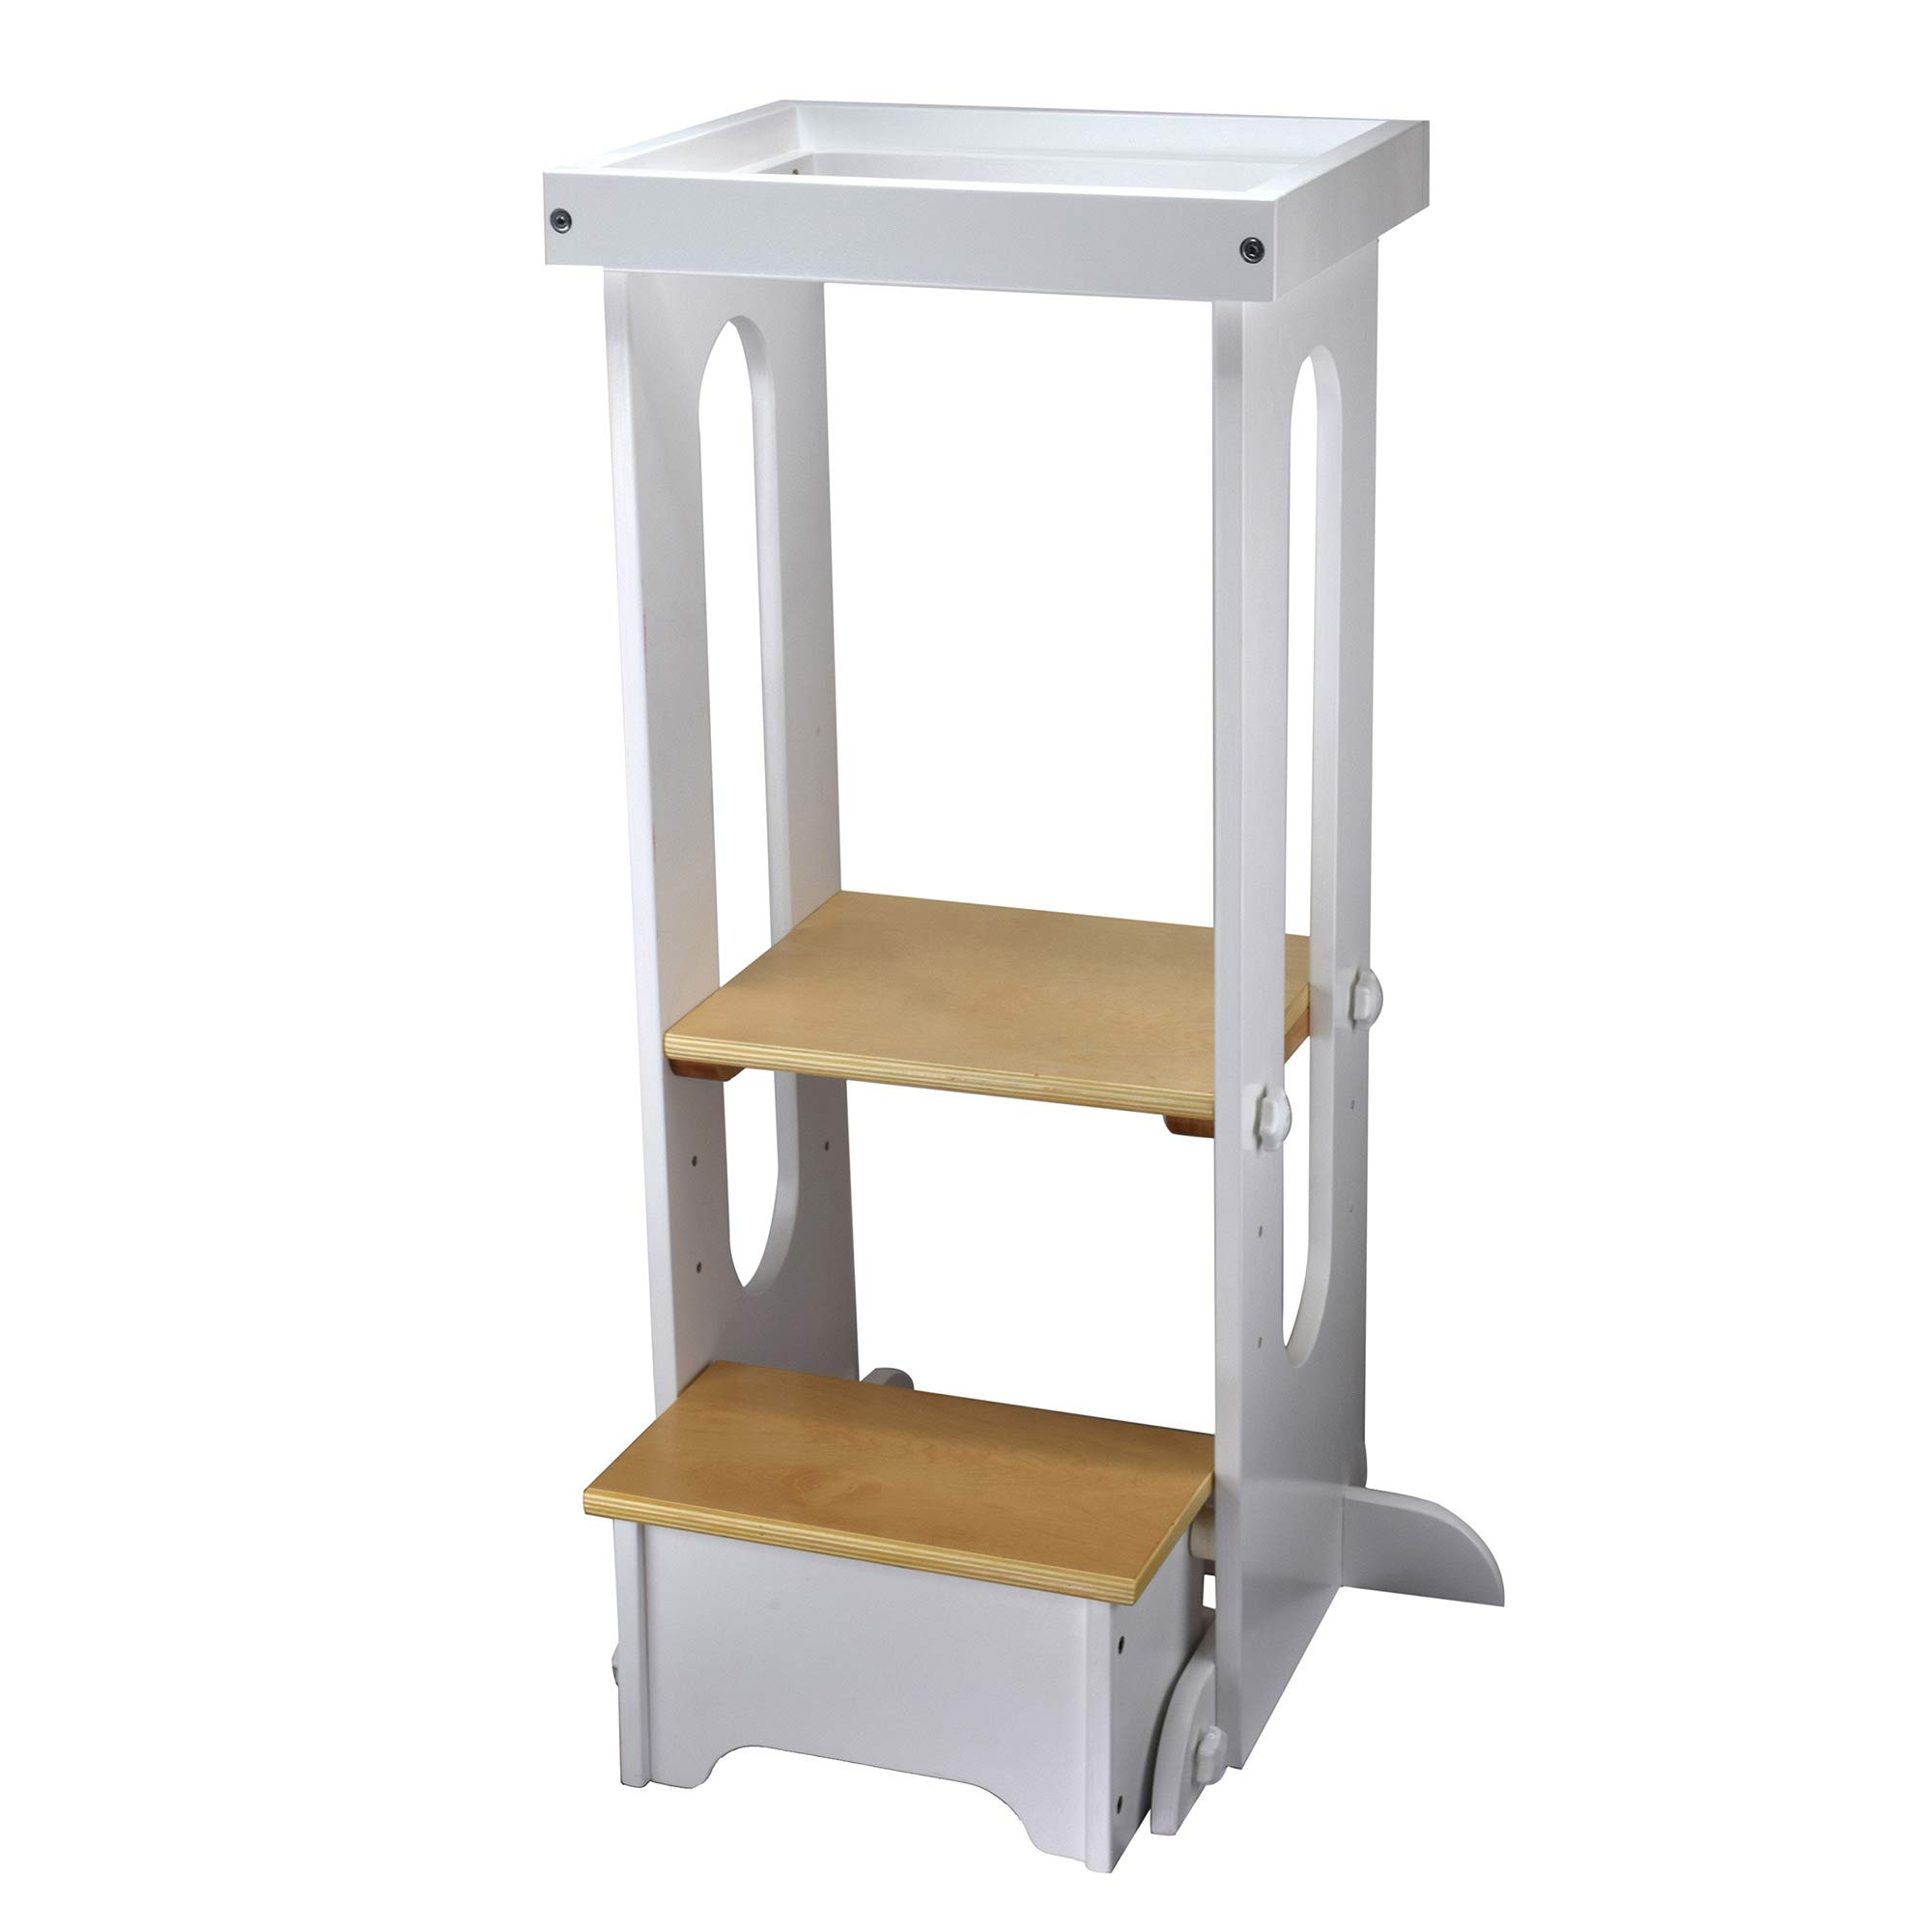 Little Partners Explore n Store Learning Tower Kids Adjustable Height Kitchen Step Stool for Toddlers or Any Little Helper - White and Natural Platform